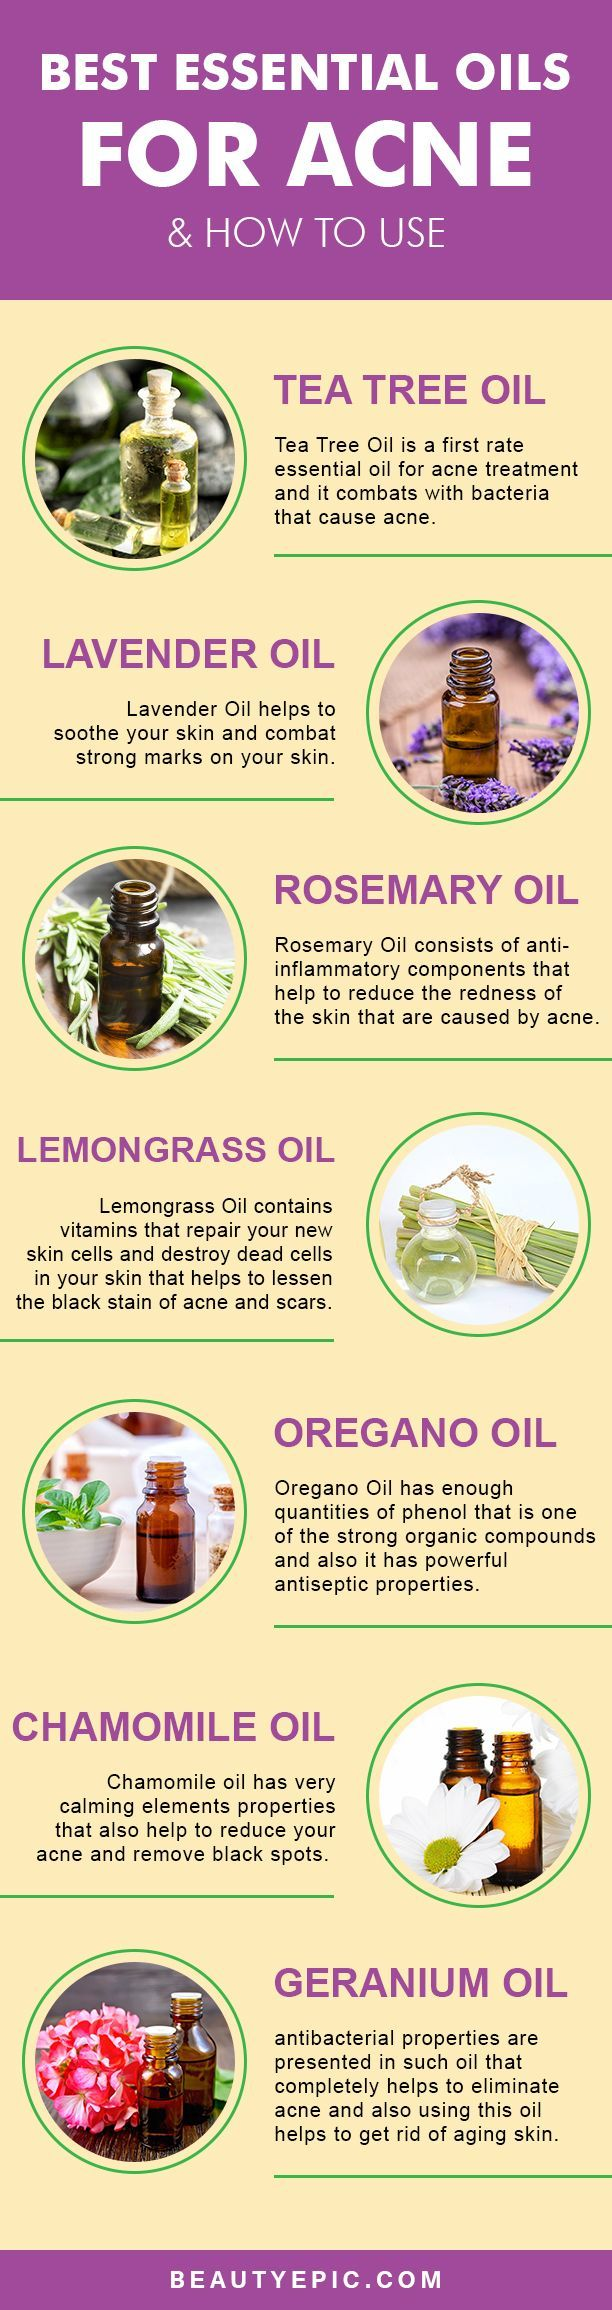 10 Best Essential Oils for Acne & How to Use http://www.wartalooza.com/treatments/trichloroacetic-acid